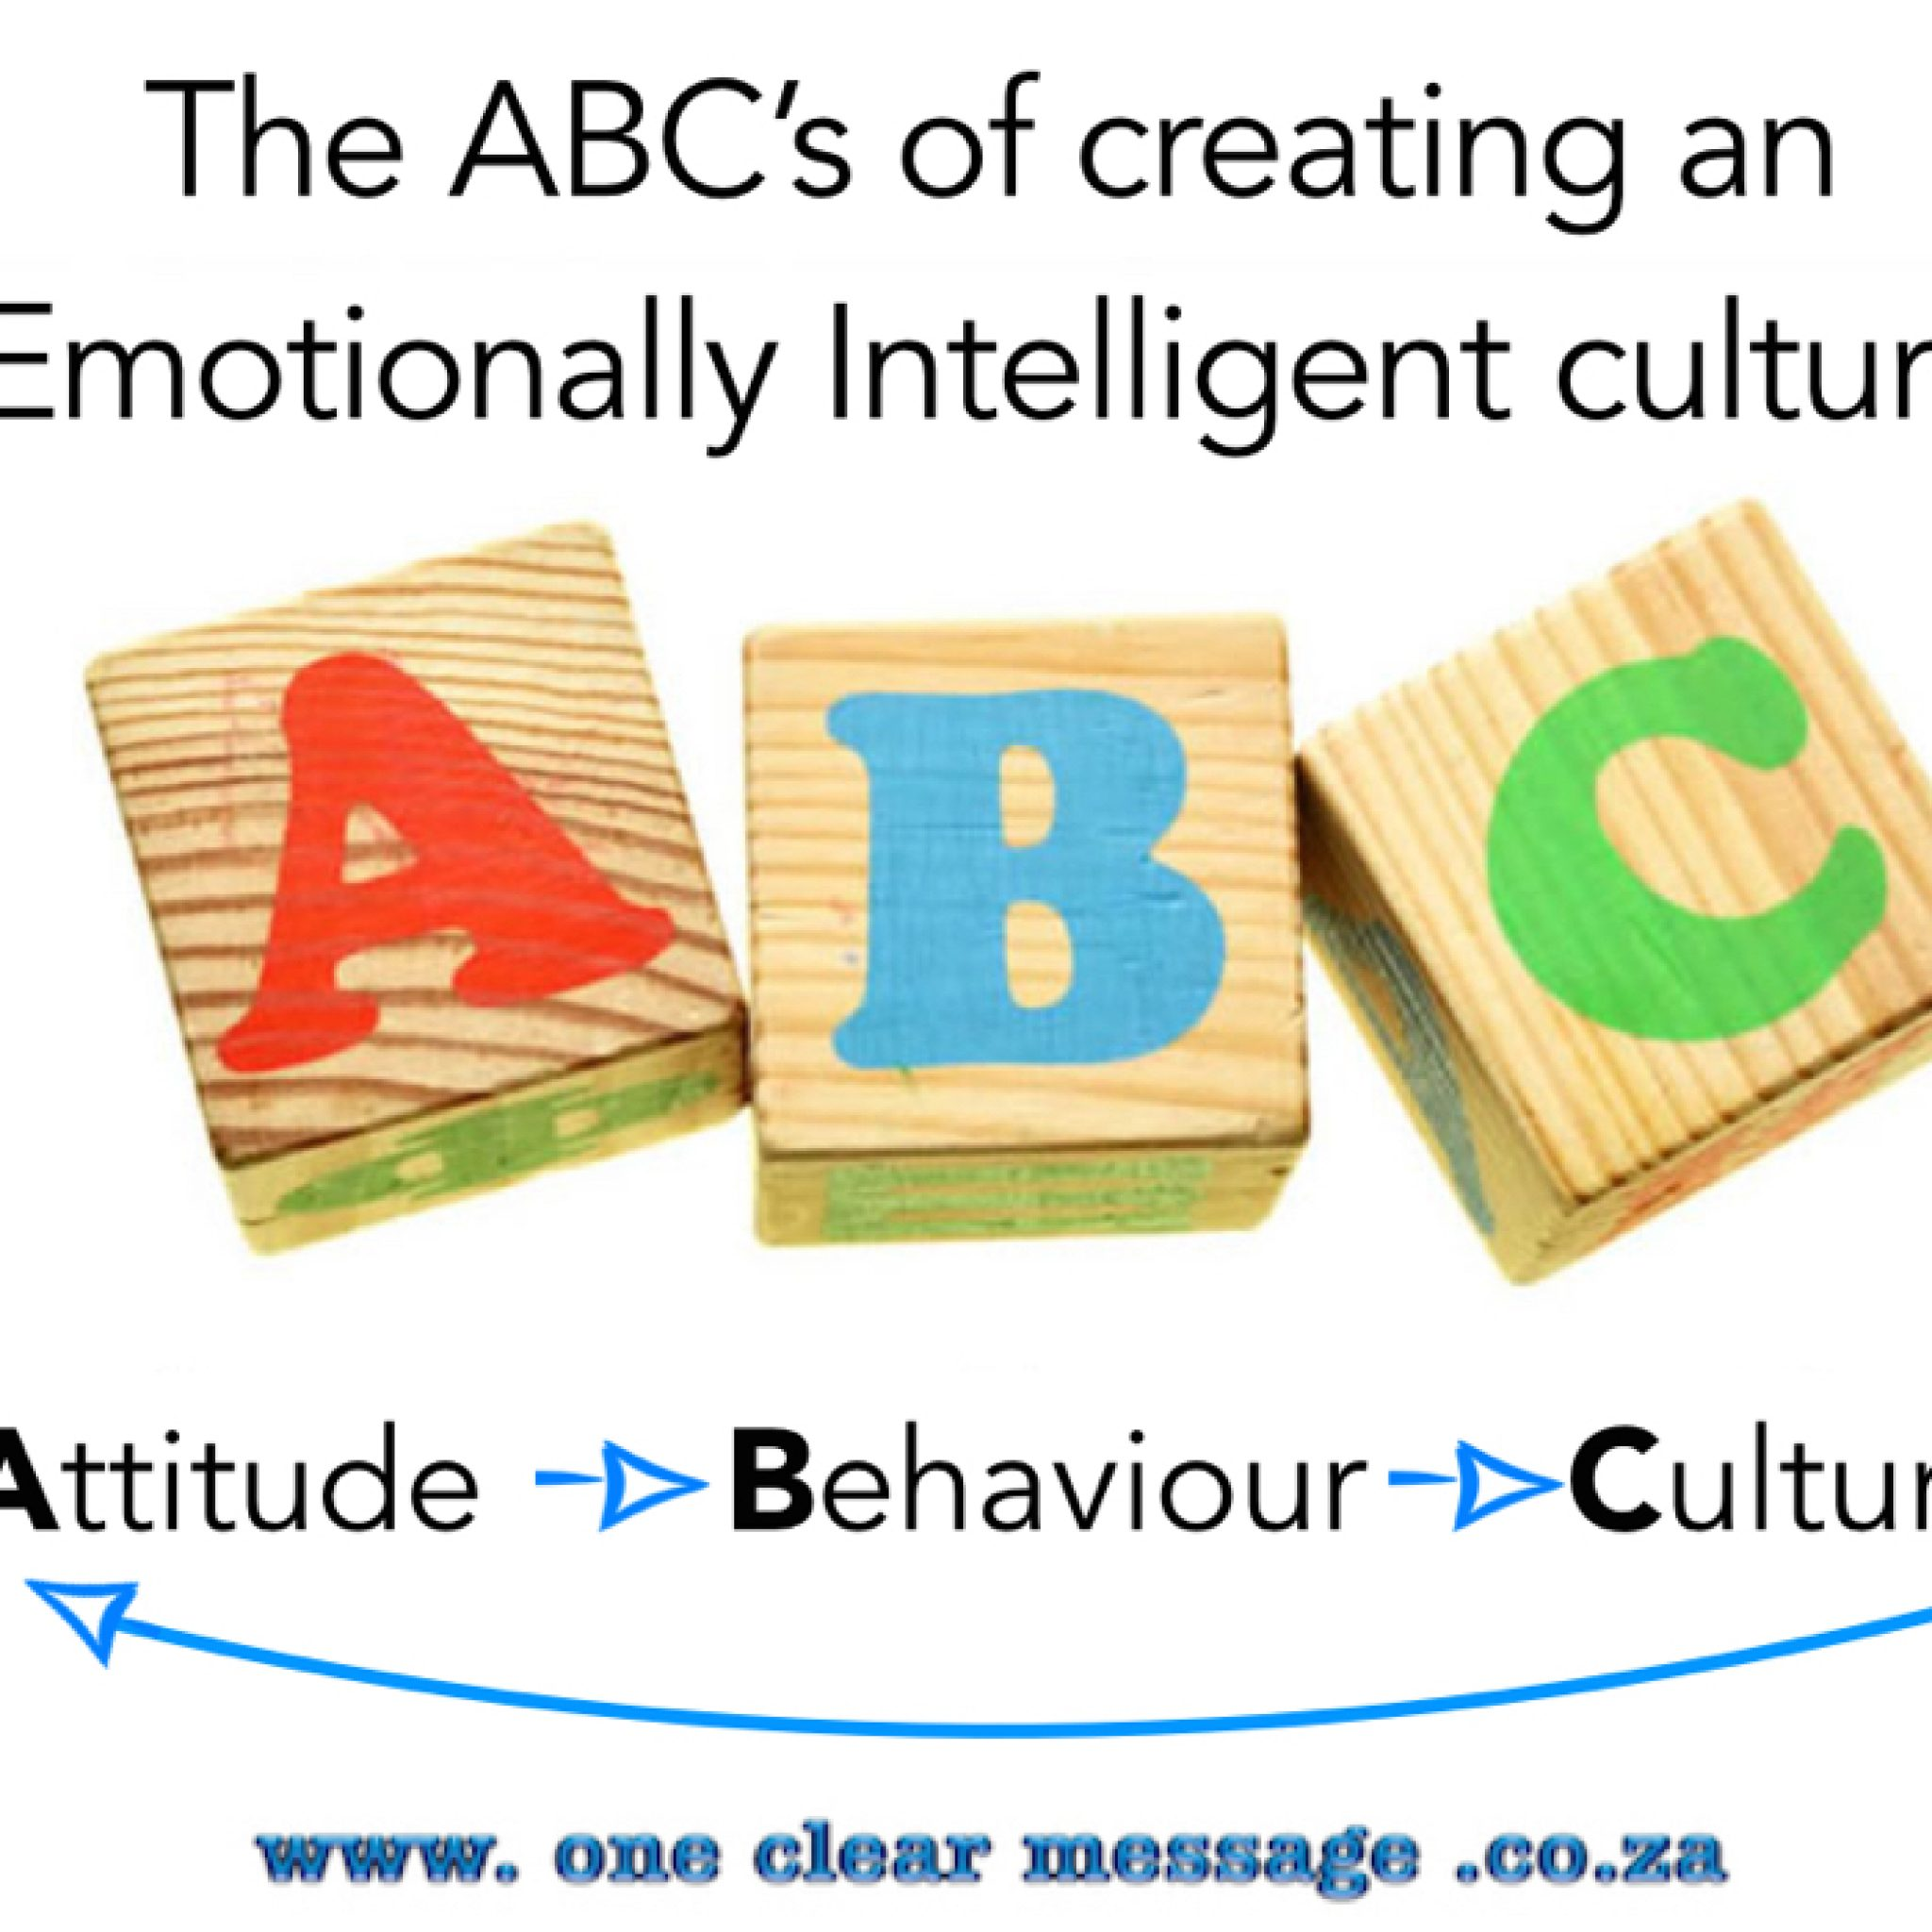 The ABC's of creating an Emotionally Intelligent culture 7